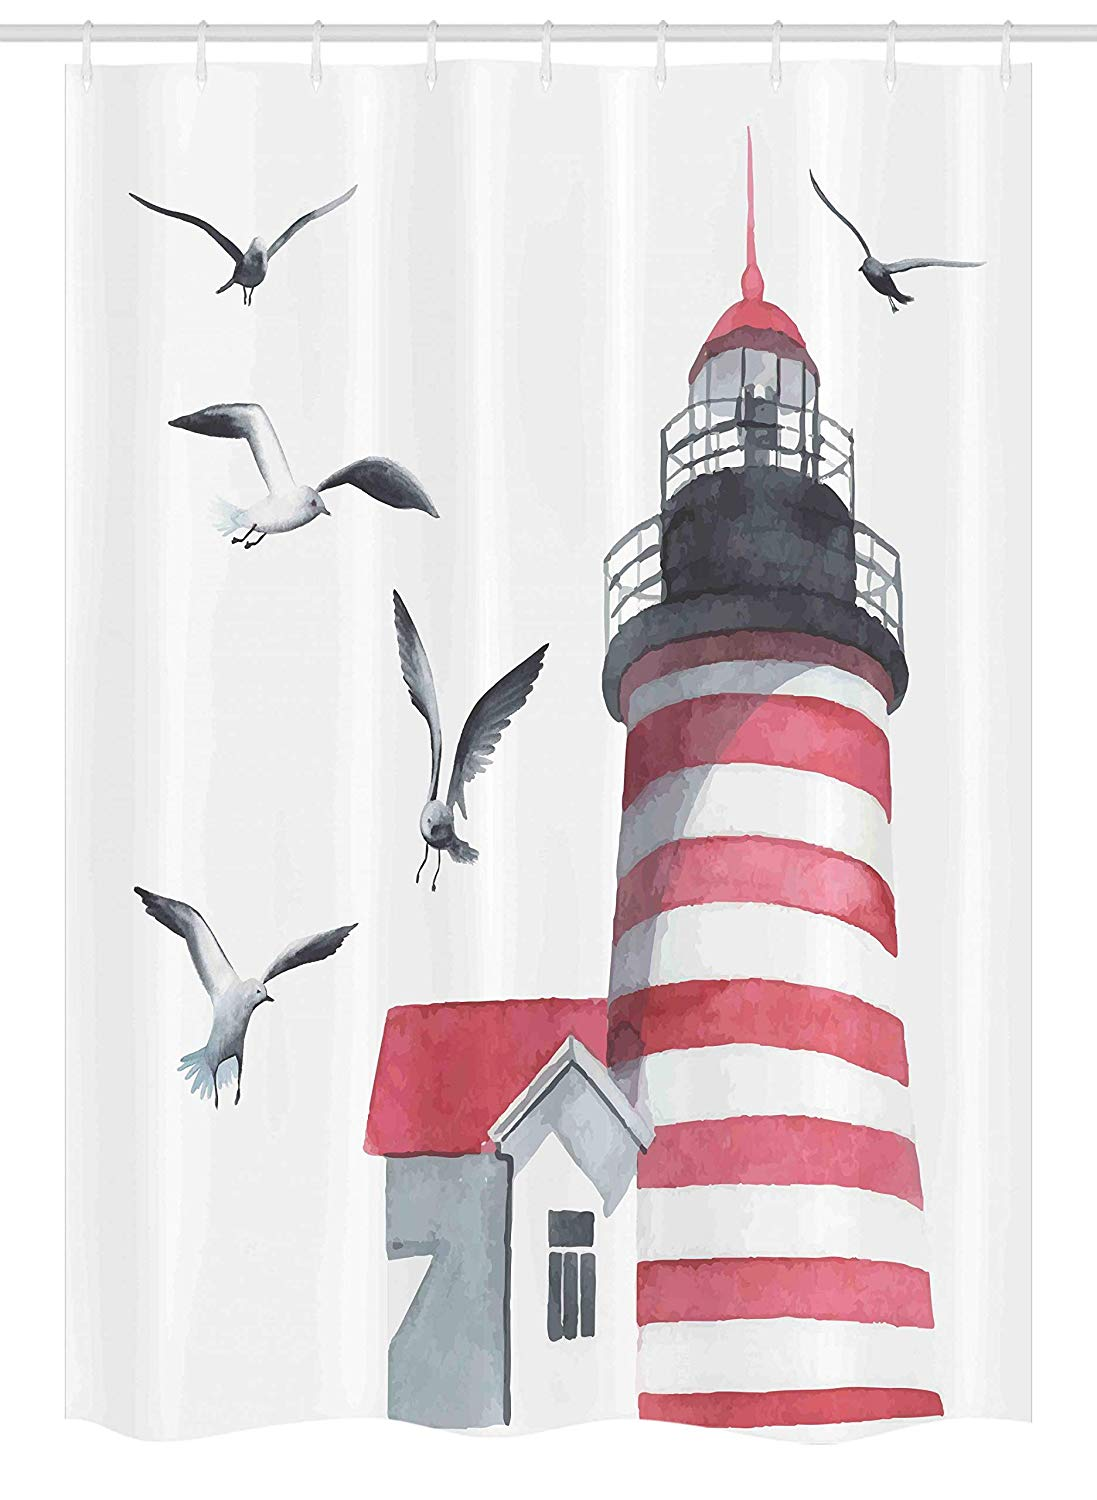 Ambesonne Lighthouse Stall Shower Curtain, Lighthouse and Seagulls on The Beach Navigational Aid Seaside Waterways Art, Fabric Bathroom Decor Set with Hooks, 54 W x 78 L Inches, Red Grey White